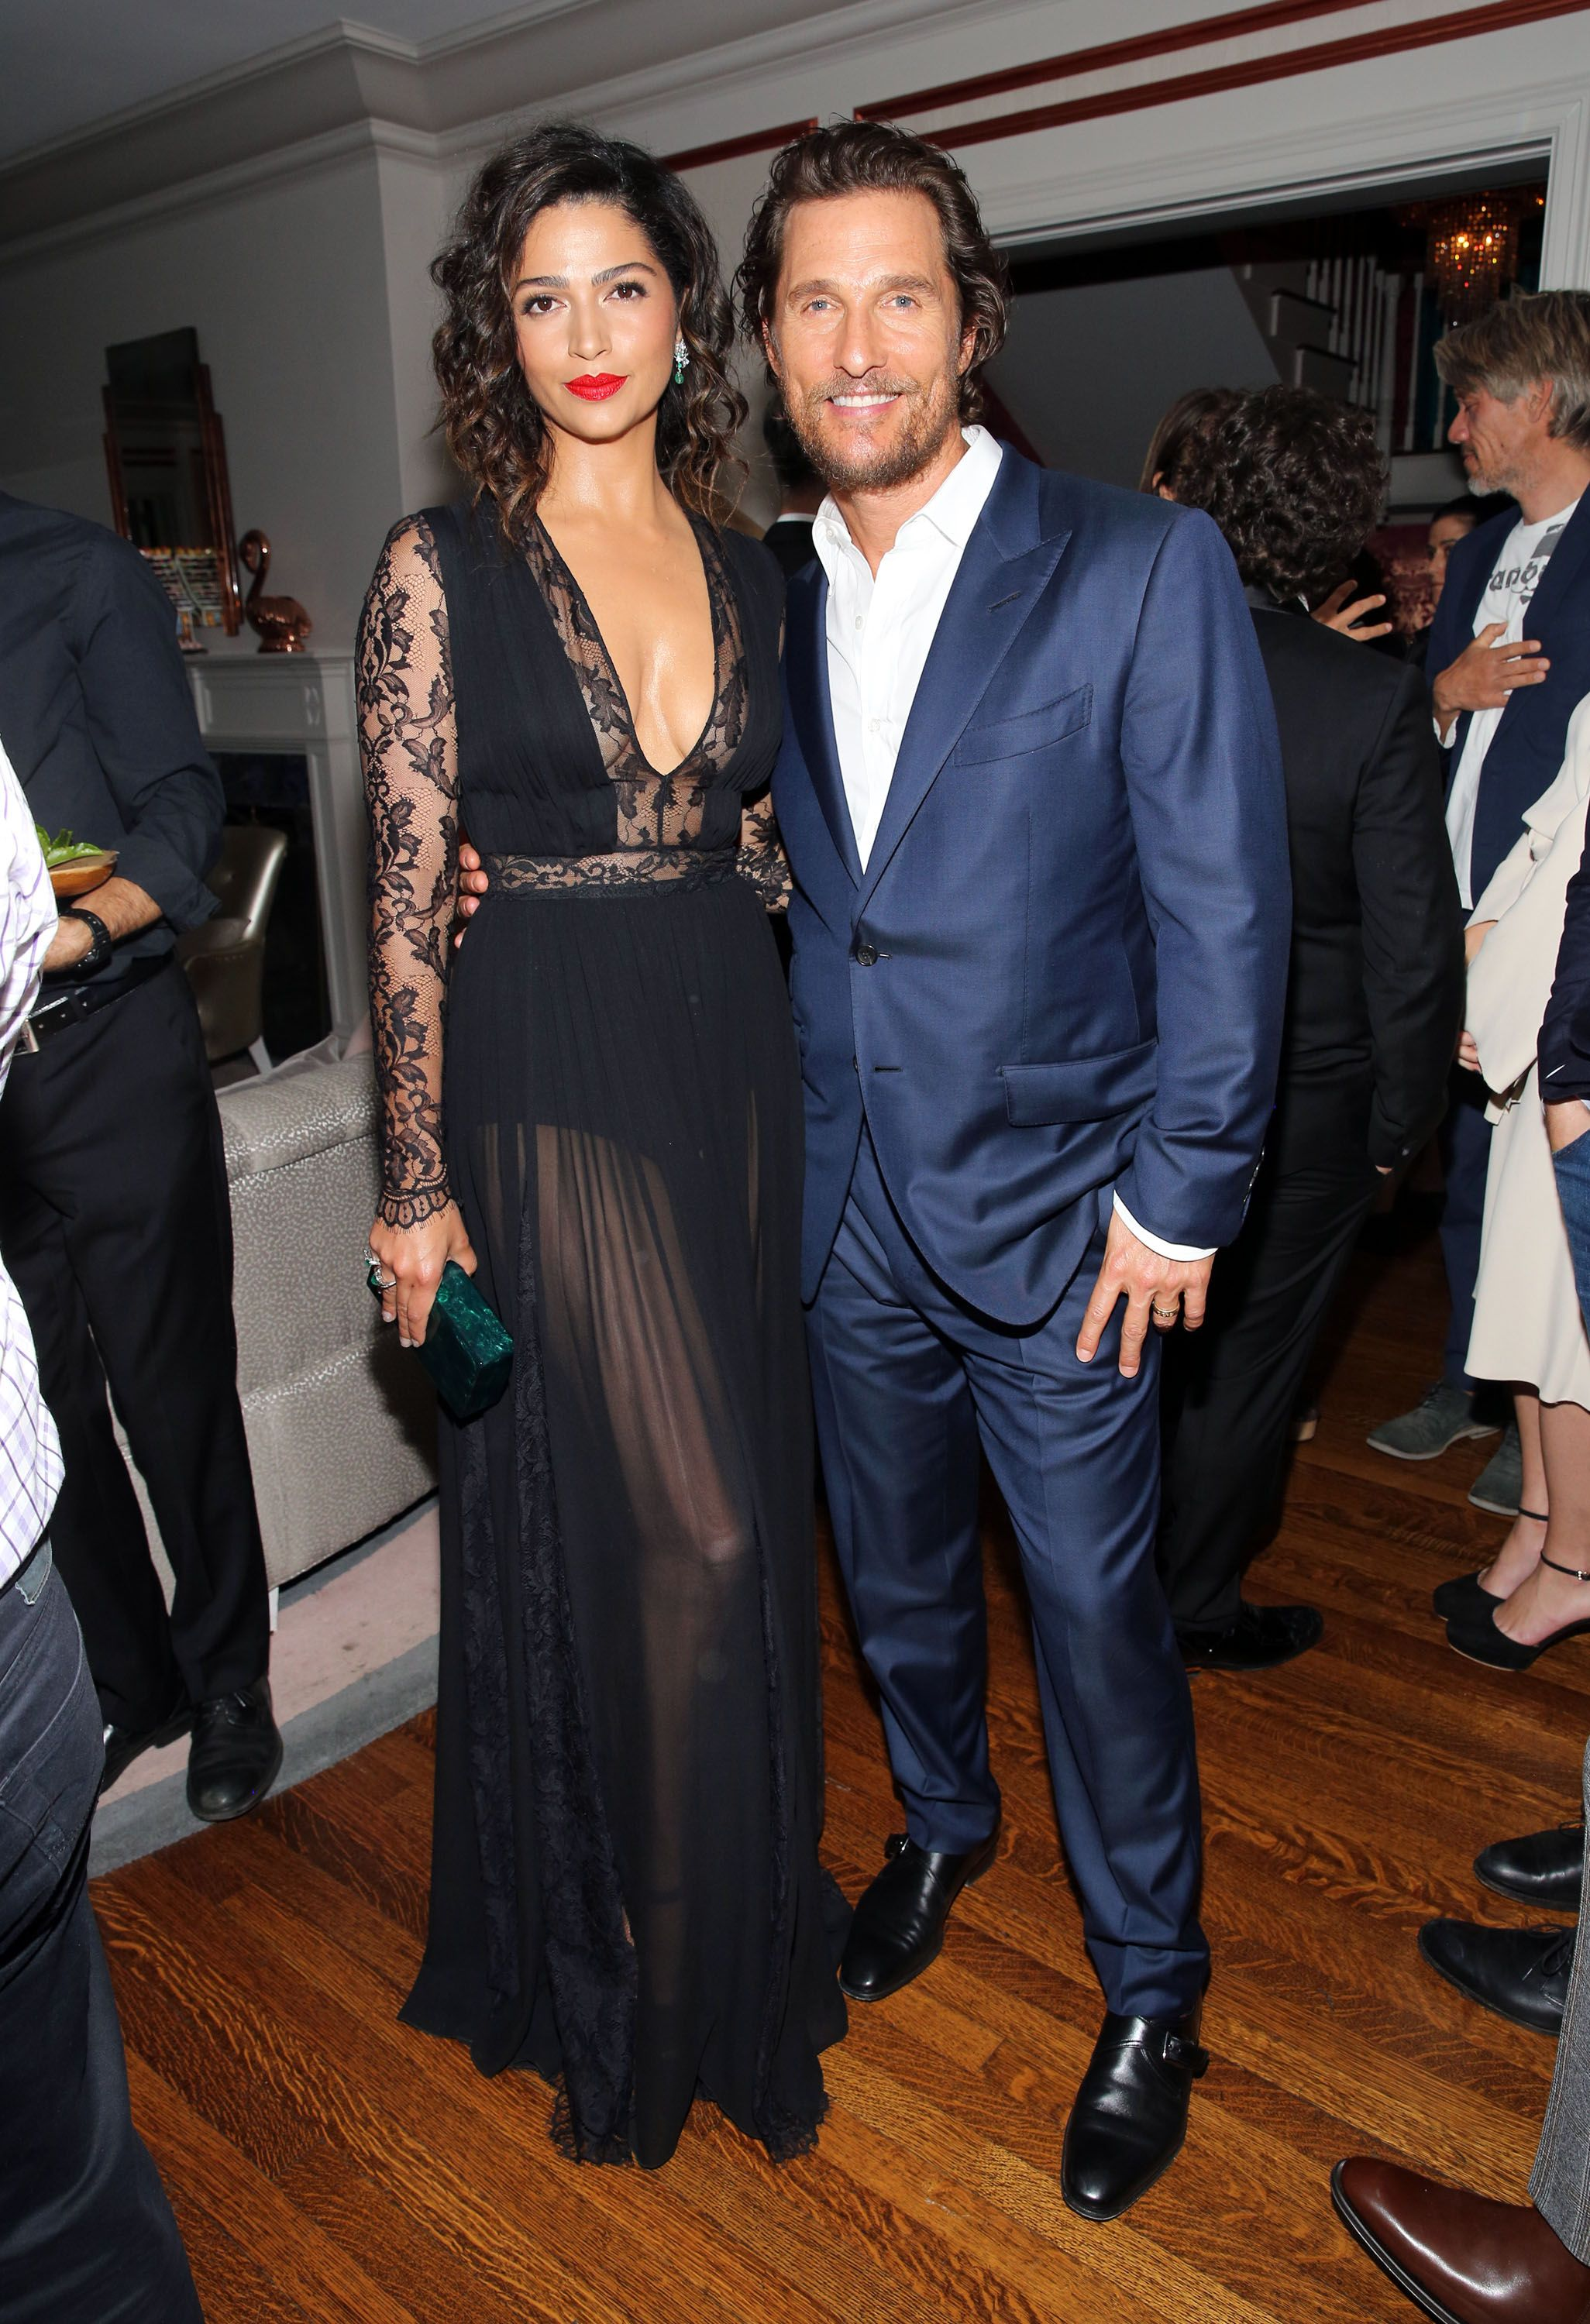 """Matthew McConaughey and Camila Alves attend as The Weinstein Company celebrates the cast and filmmakers of """"Sing Street,"""" """"Lion,"""" """"The Founder"""" and """"Gold"""" at the private residence of Jonas Tahlin on November 12, 2016 in Los Angeles, California. 